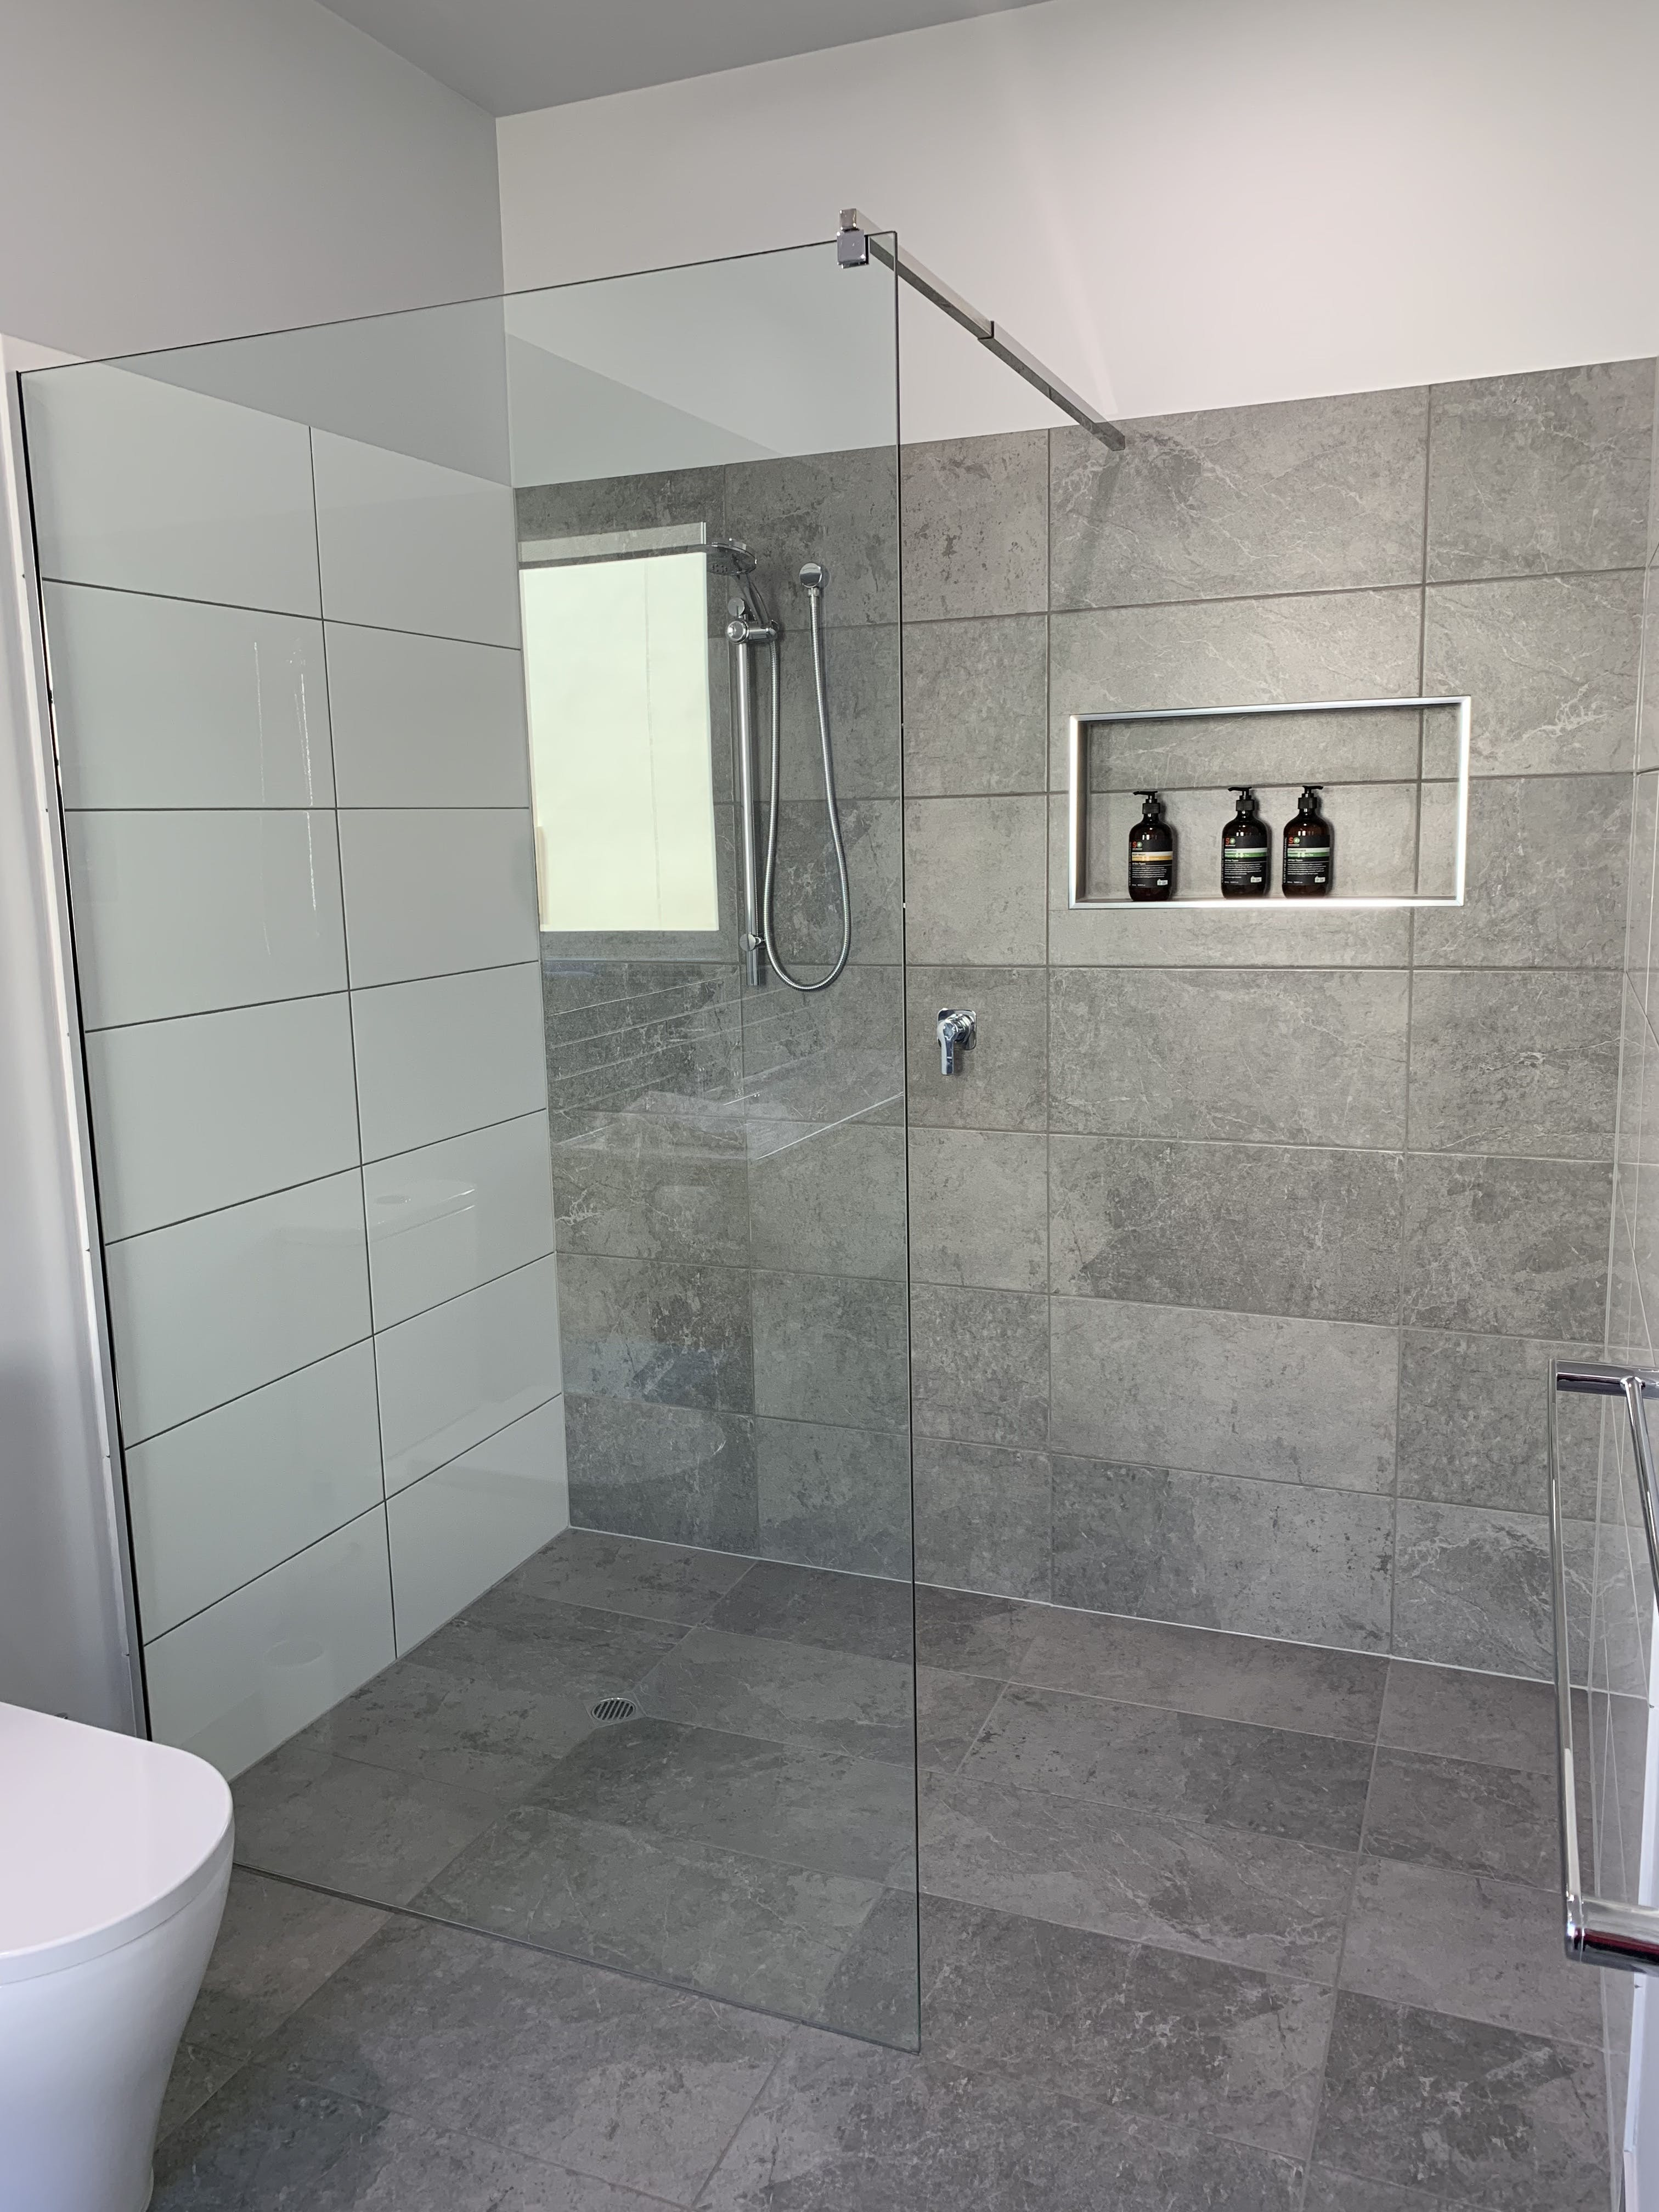 All of our studios feature an oversized walk-in shower